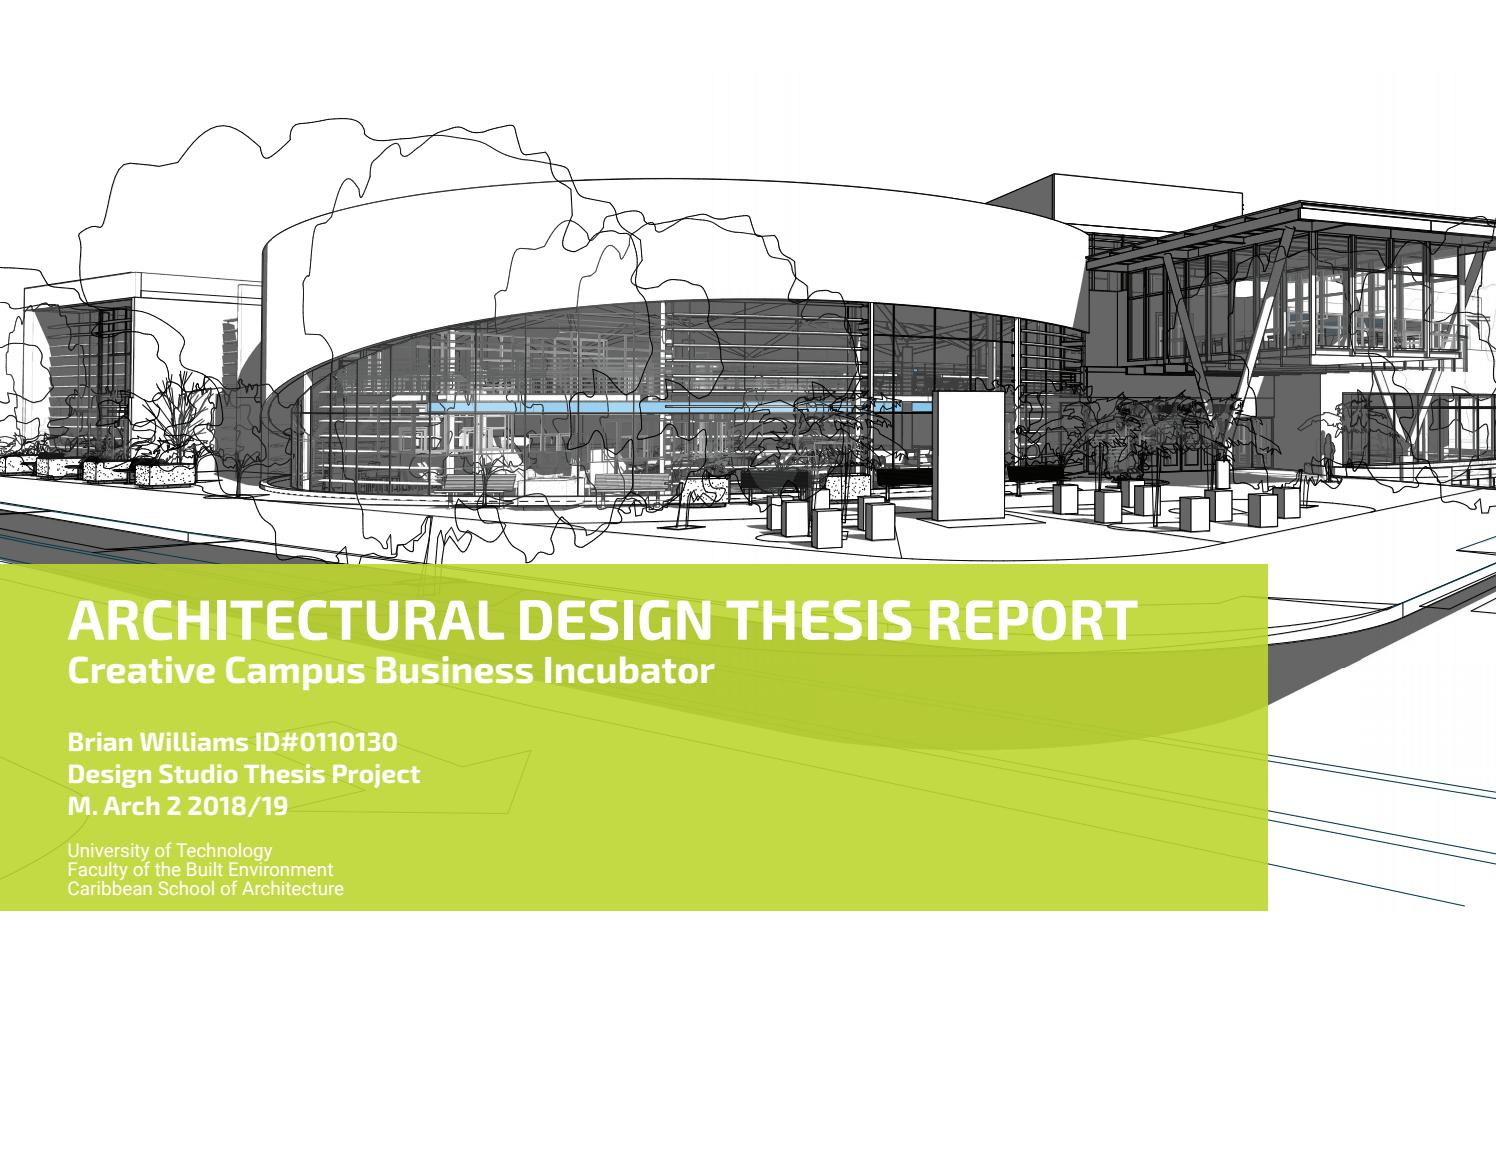 ARCHITECTURAL DESIGN THESIS REPORT By UTech, FOBE CSA, Design Computing -  Issuu